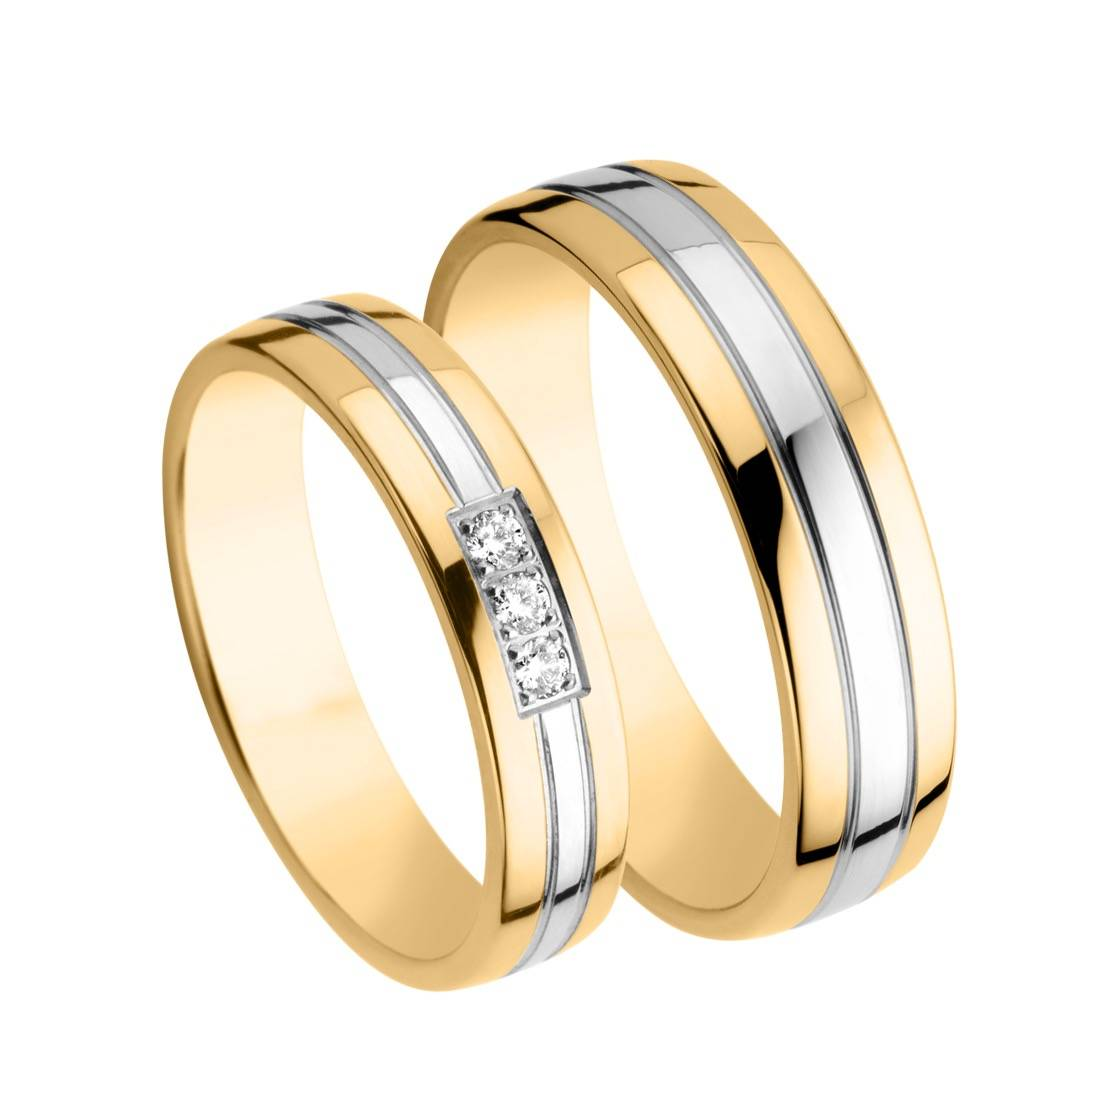 Juwelier Jan Maes - Trouwringen - Verlovingsringen - Juwelen - House of Weddings - 9